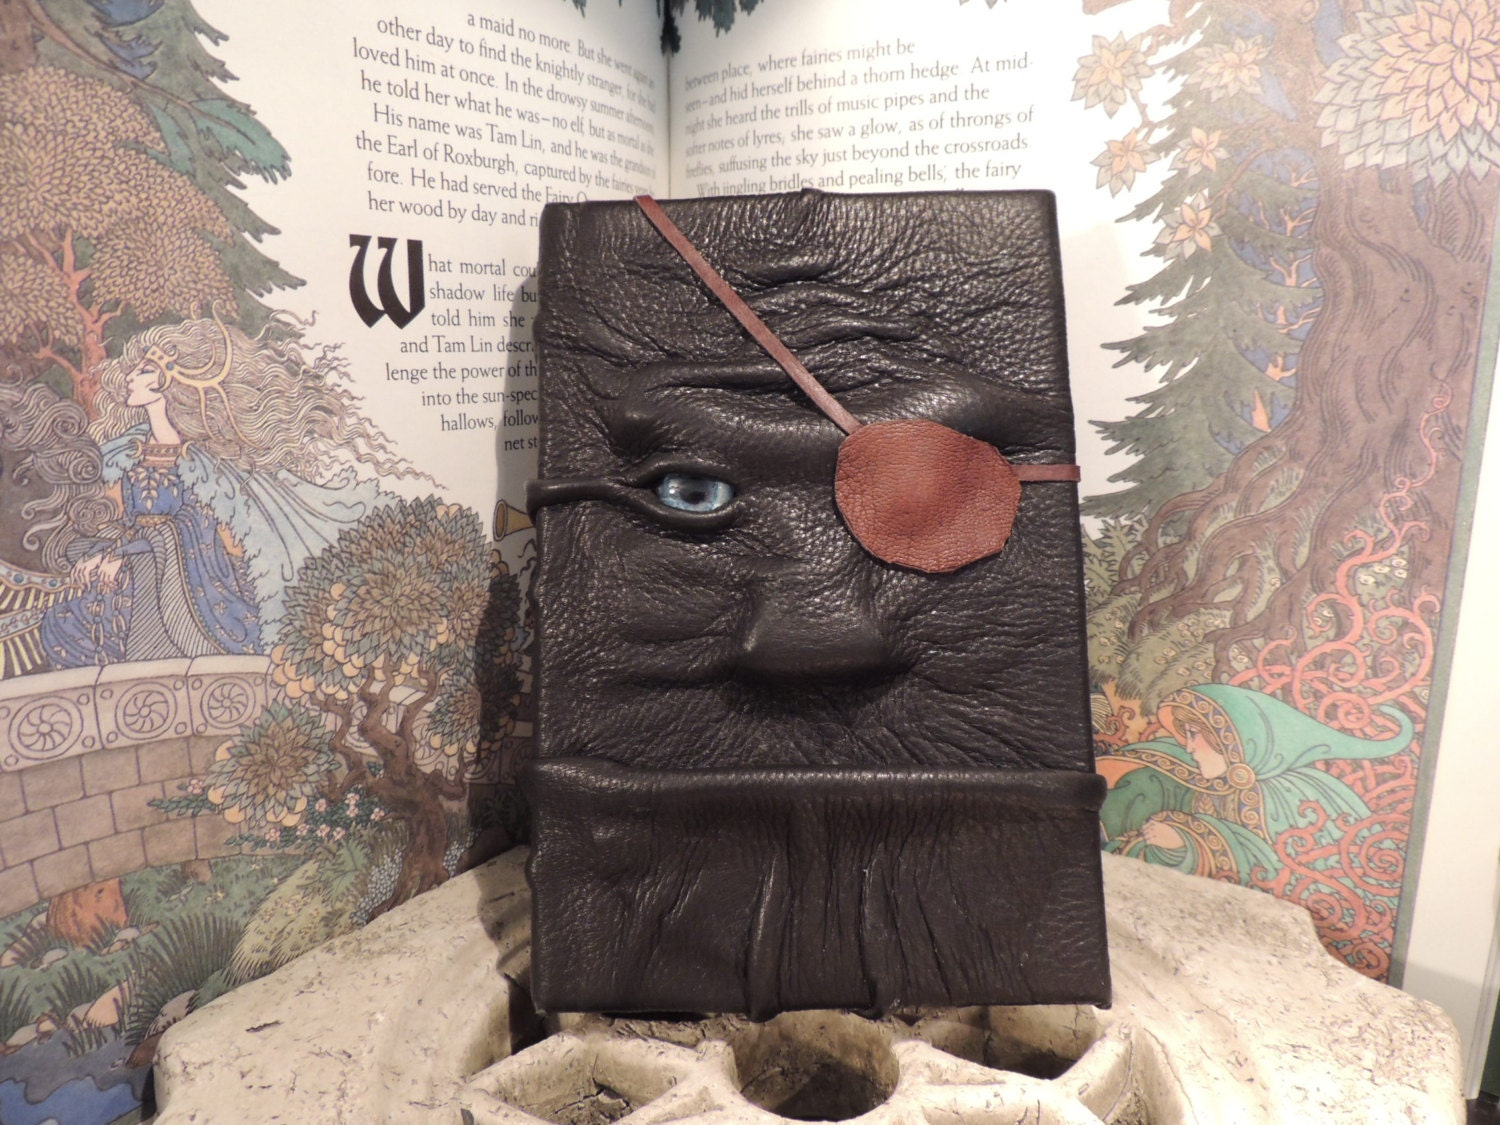 Mythical Beast Book (Pirate-black leather w/eye patch) - AbbotsHollowStudios